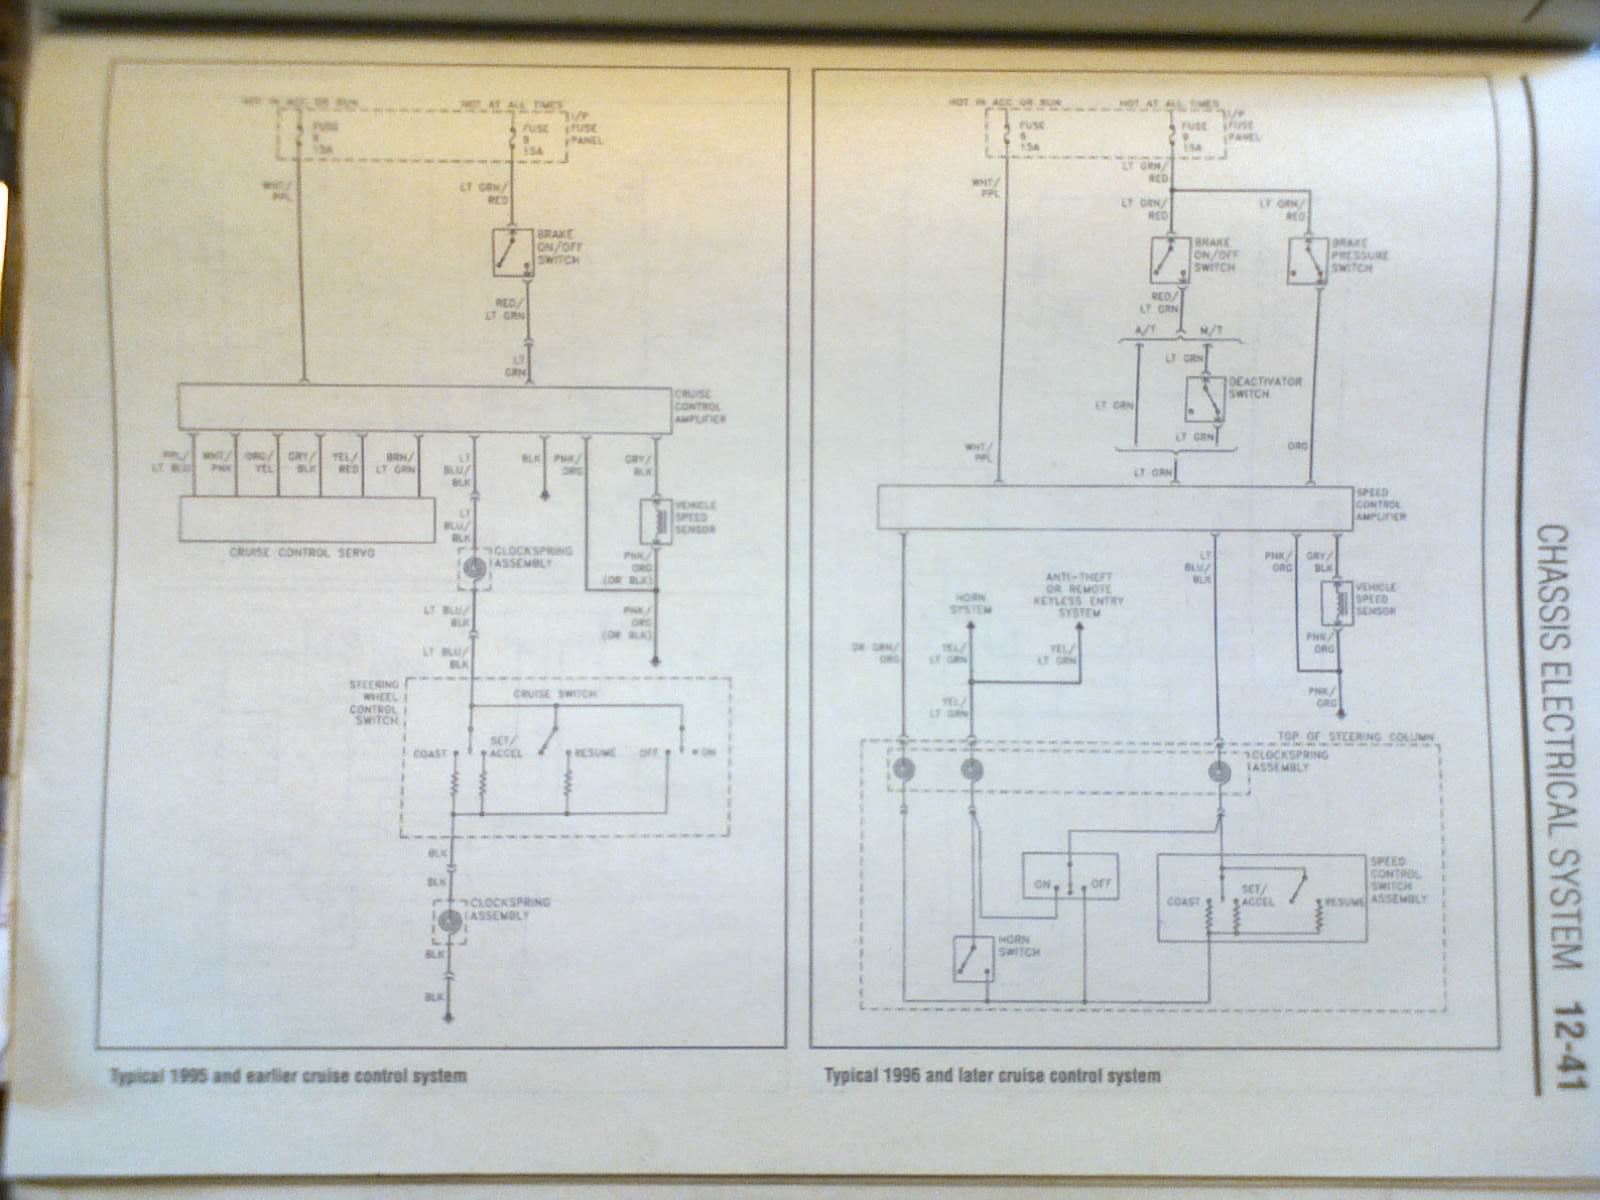 1995 ford mustang gt wiring diagram a 3 way switch cruise control 2003